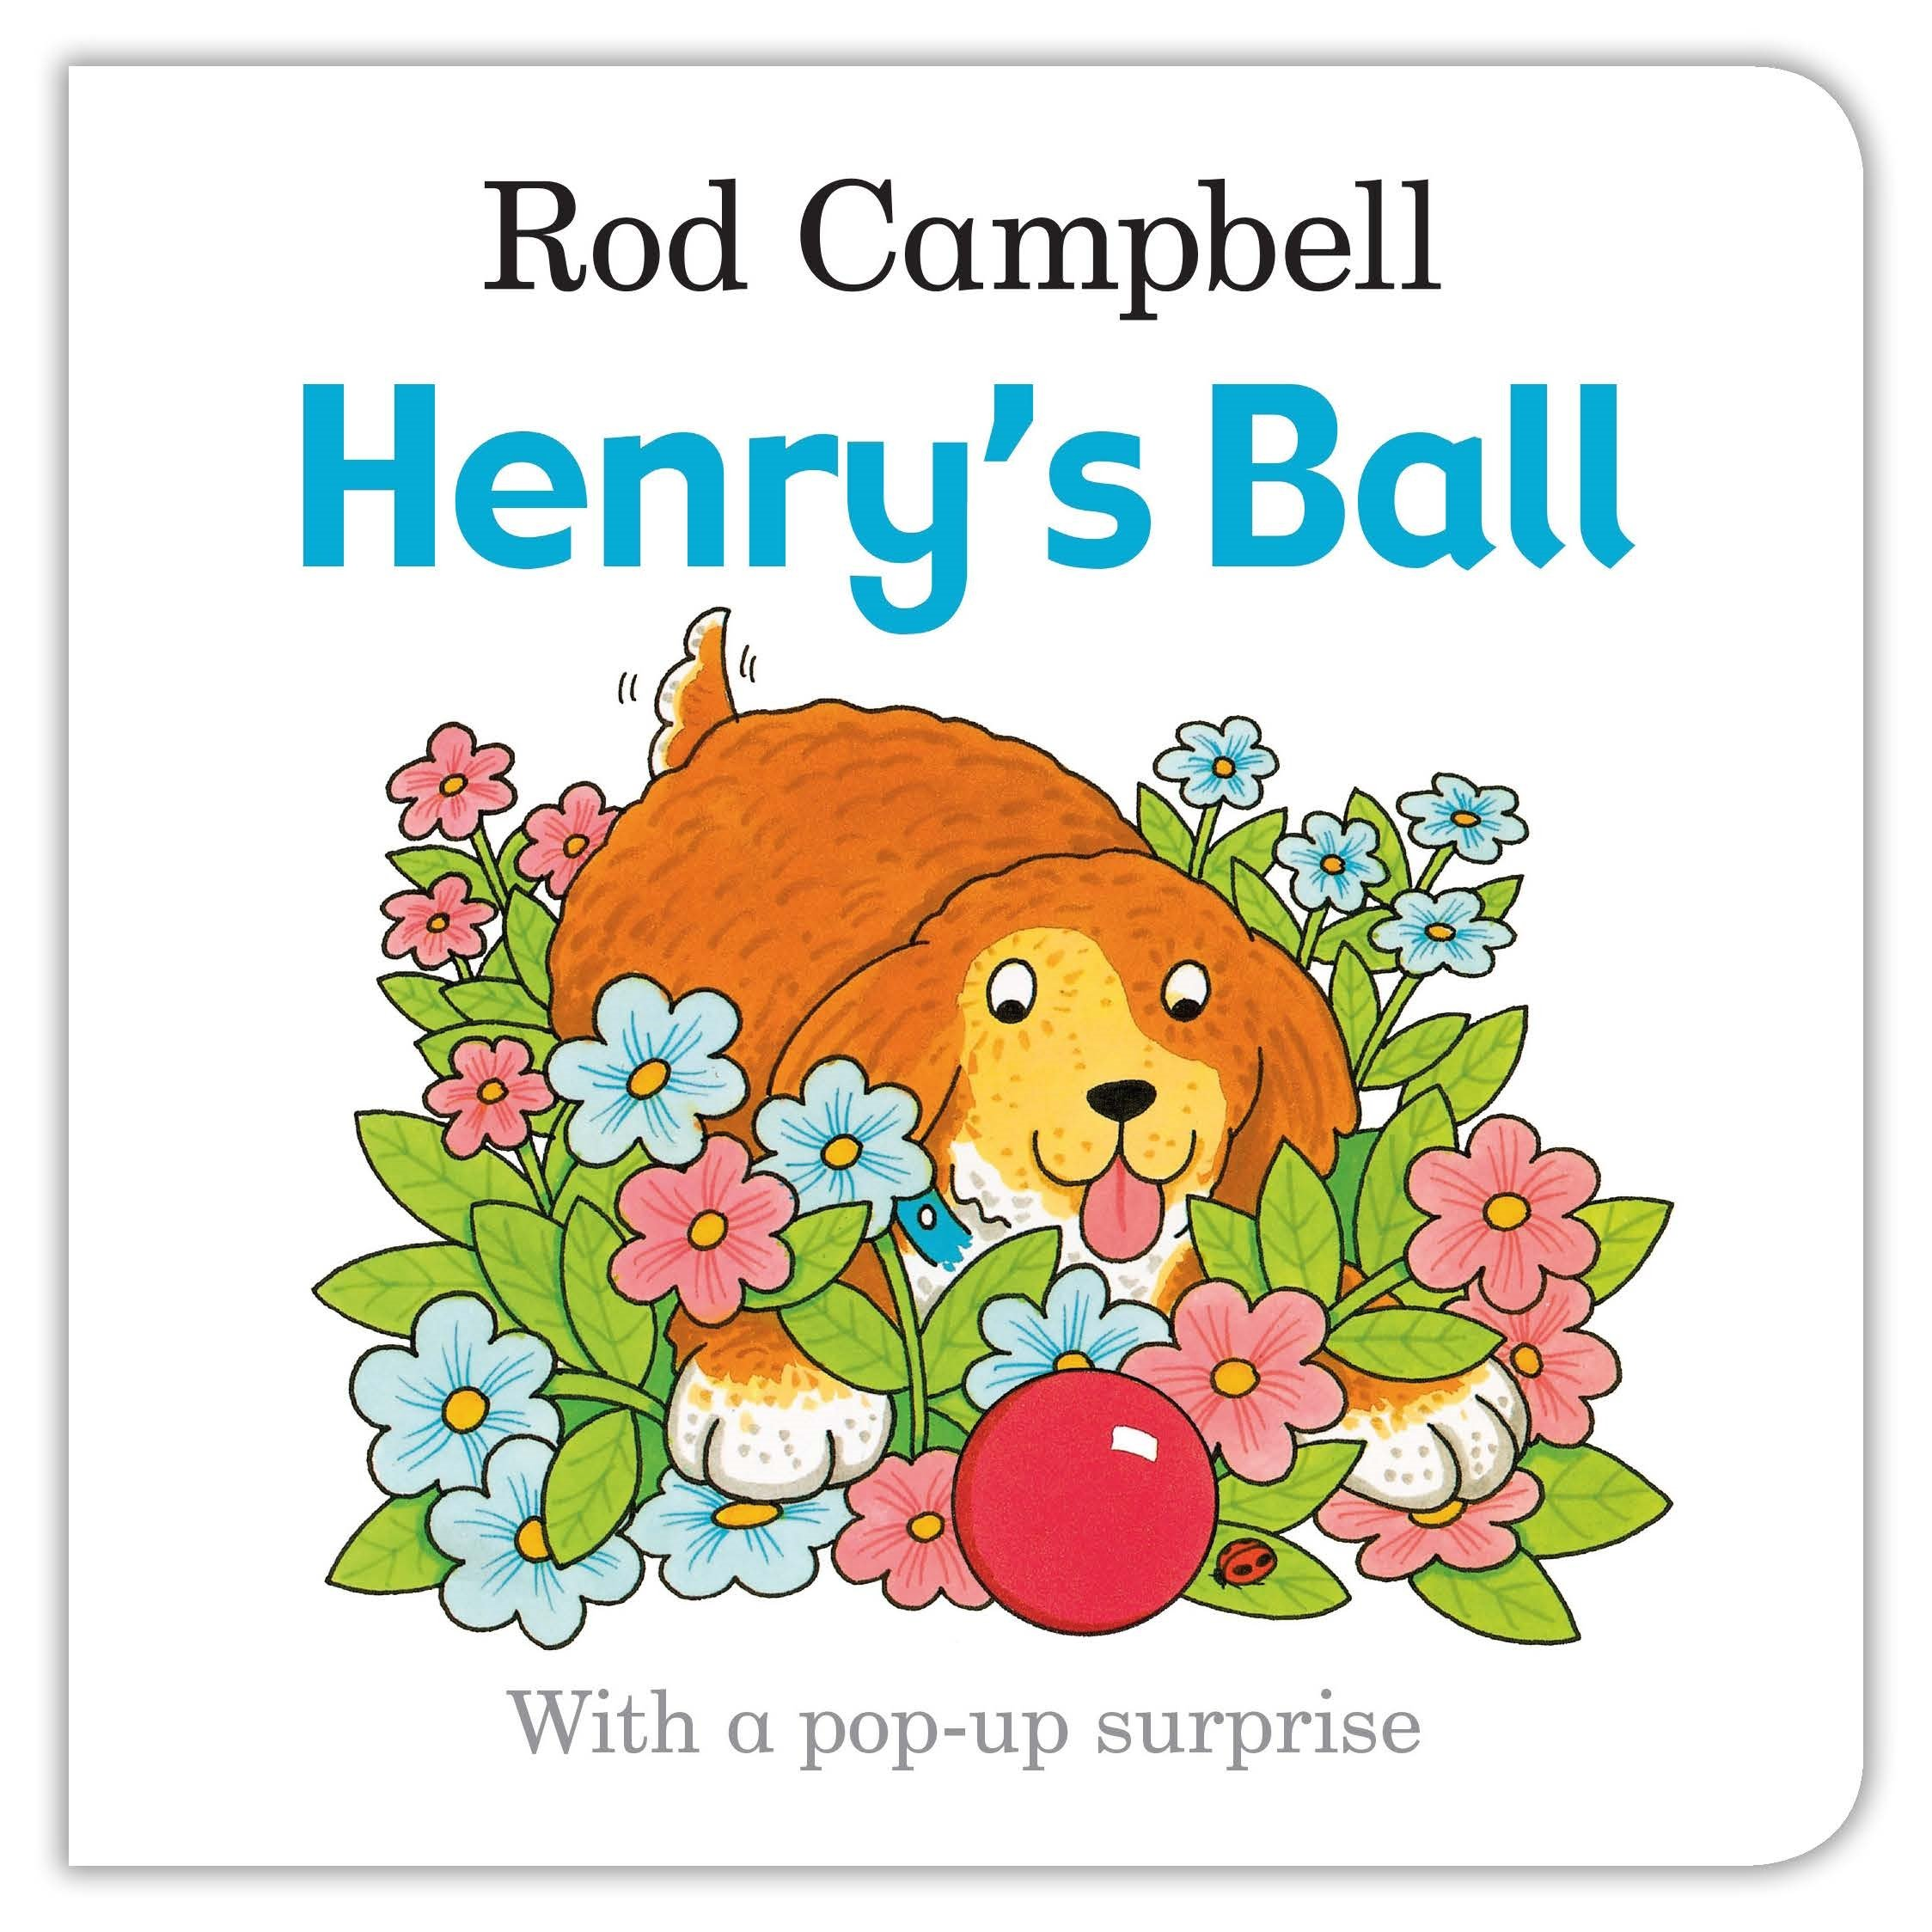 Henry's Ball spot dobble find it board game for children fun with family gathering the animals paper quality card